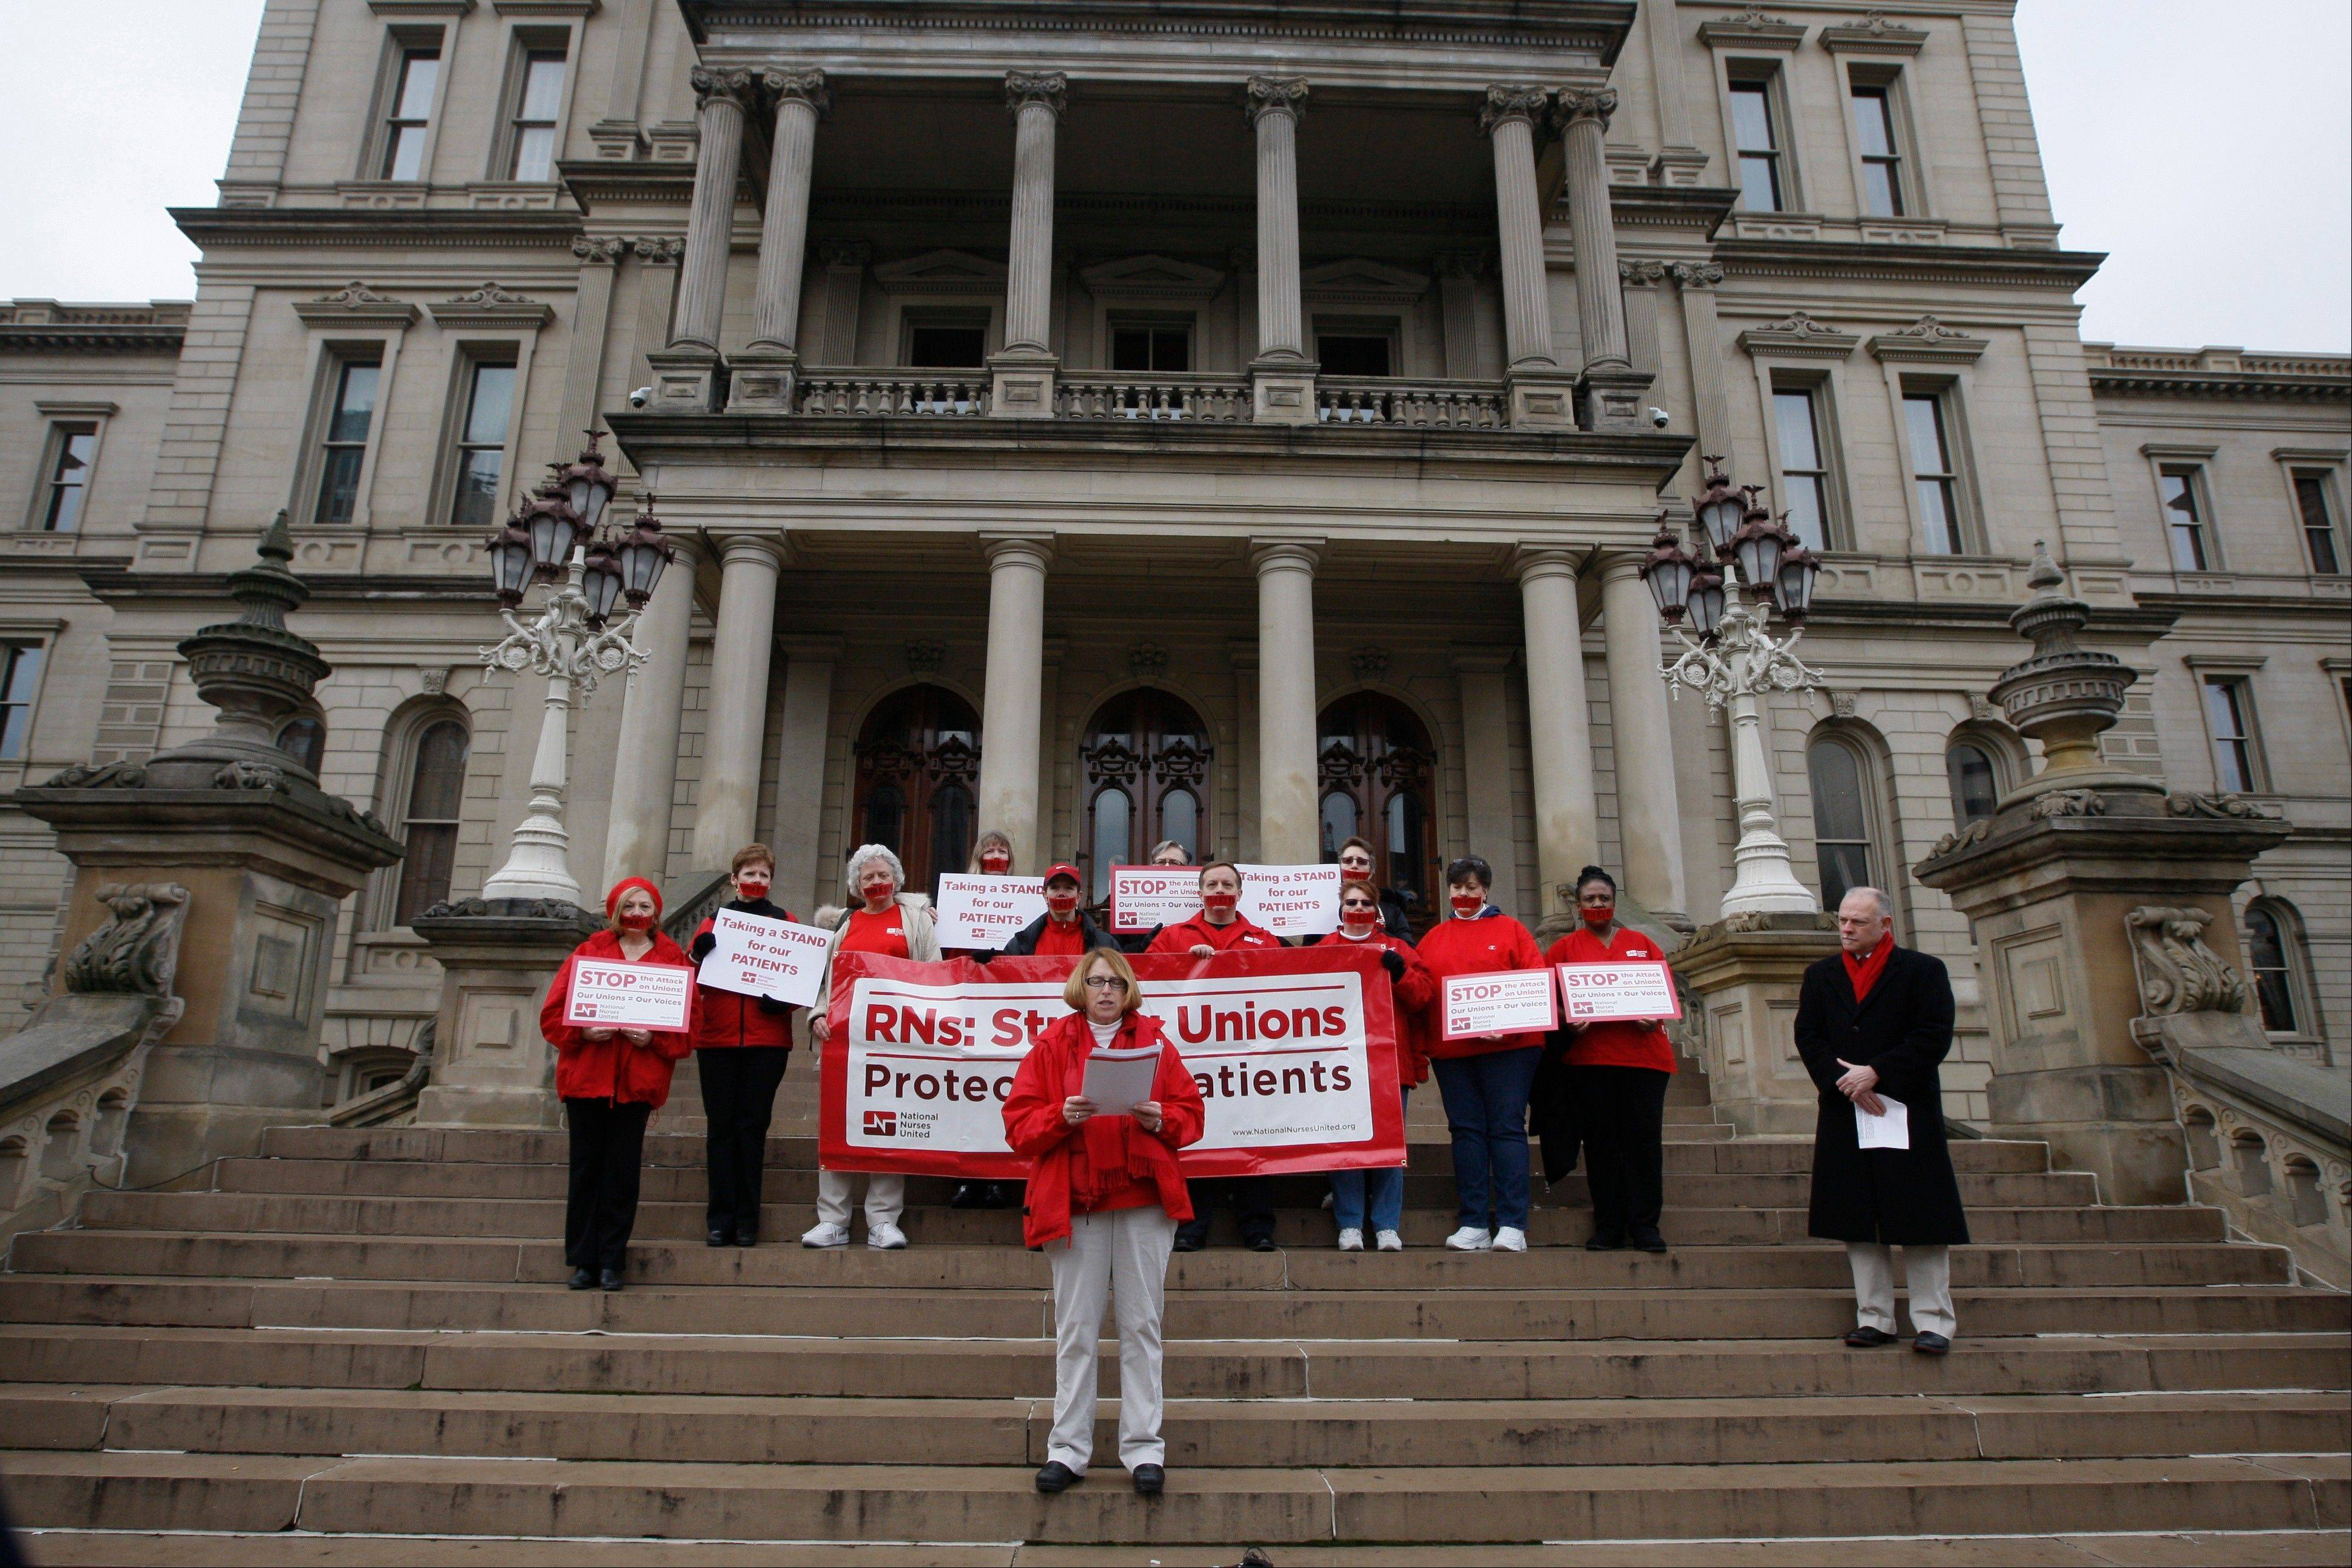 About a dozen members of the Michigan Nurses Association stand on the state Capitol steps in Lansing, Mich., Monday protesting right-to-work legislation. Organizers say the gathering was meant to symbolize the silencing of unions that nurses say will happen should the legislation become law.